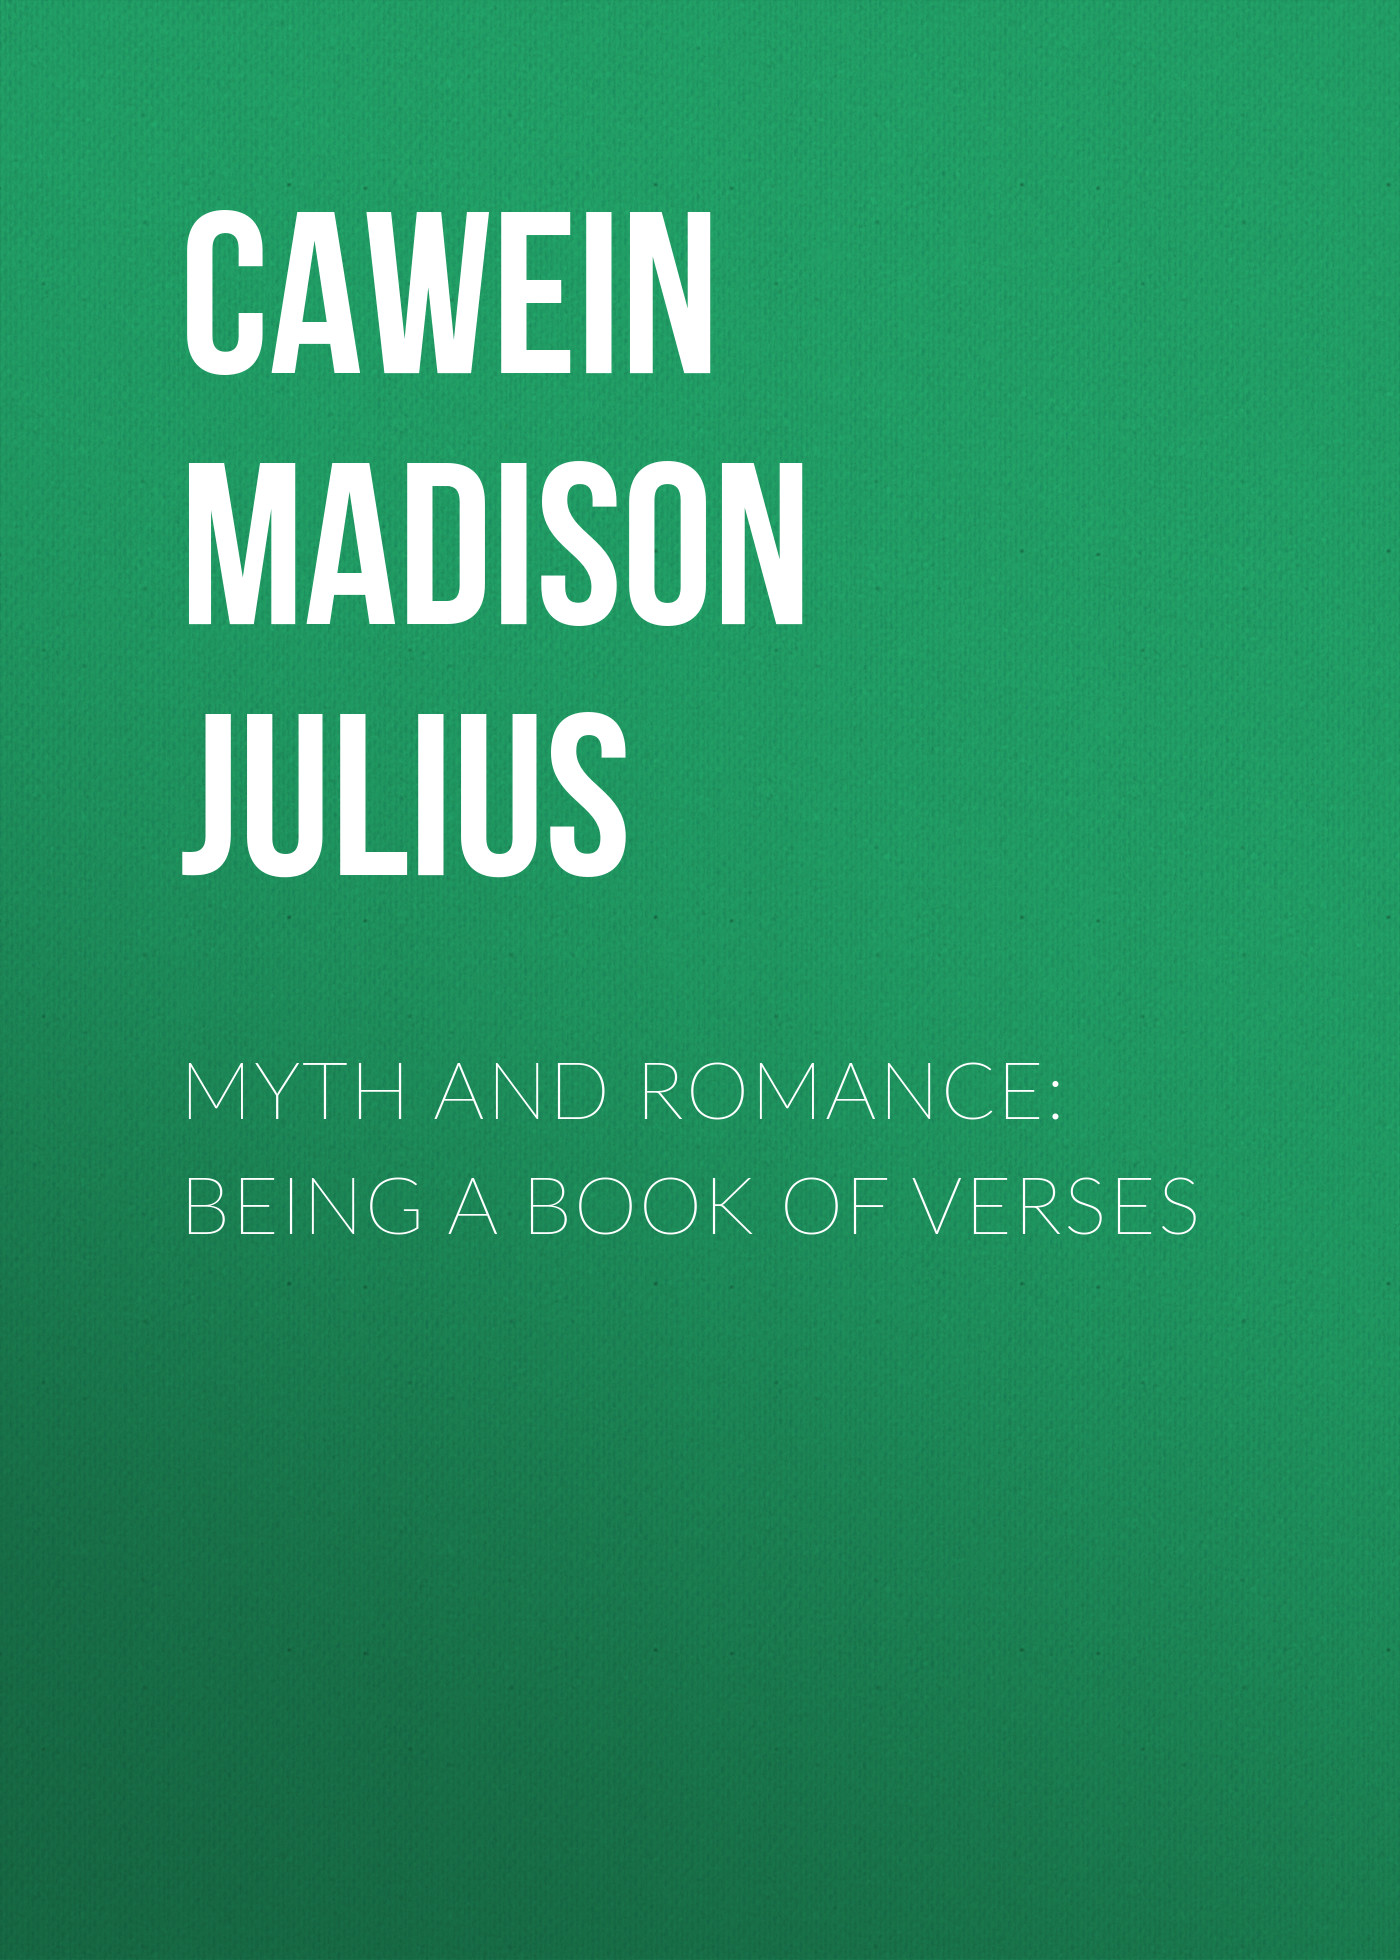 Cawein Madison Julius Myth and Romance: Being a Book of Verses cawein madison julius the cup of comus fact and fancy